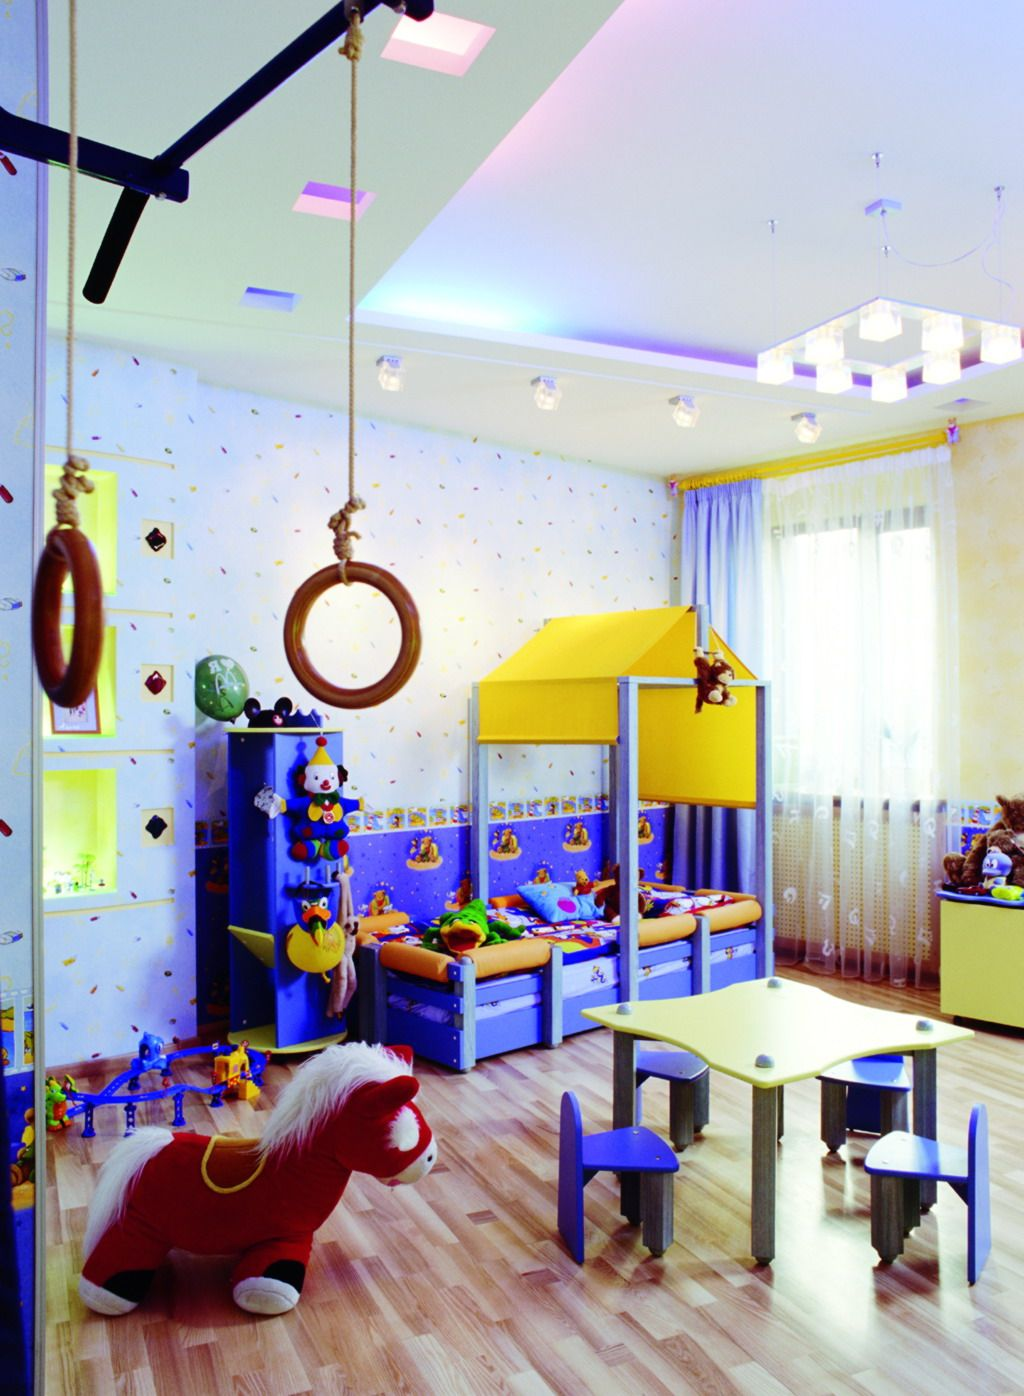 kid bedroom design photos - visi build 3d